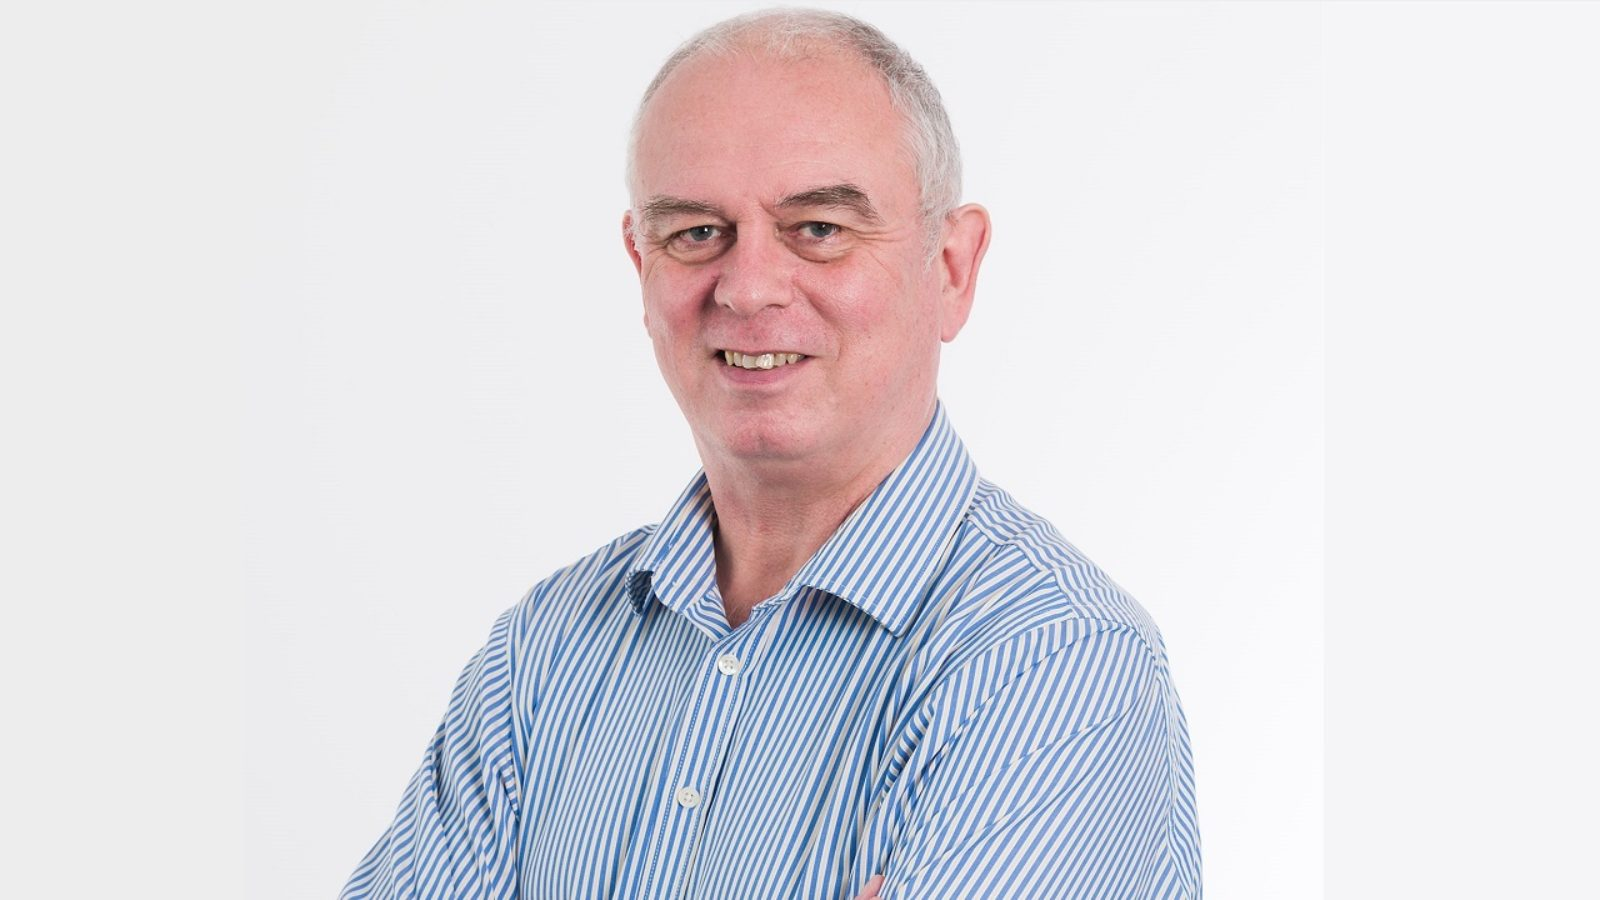 activpayroll appoints Nick Southwell as chief financial officer